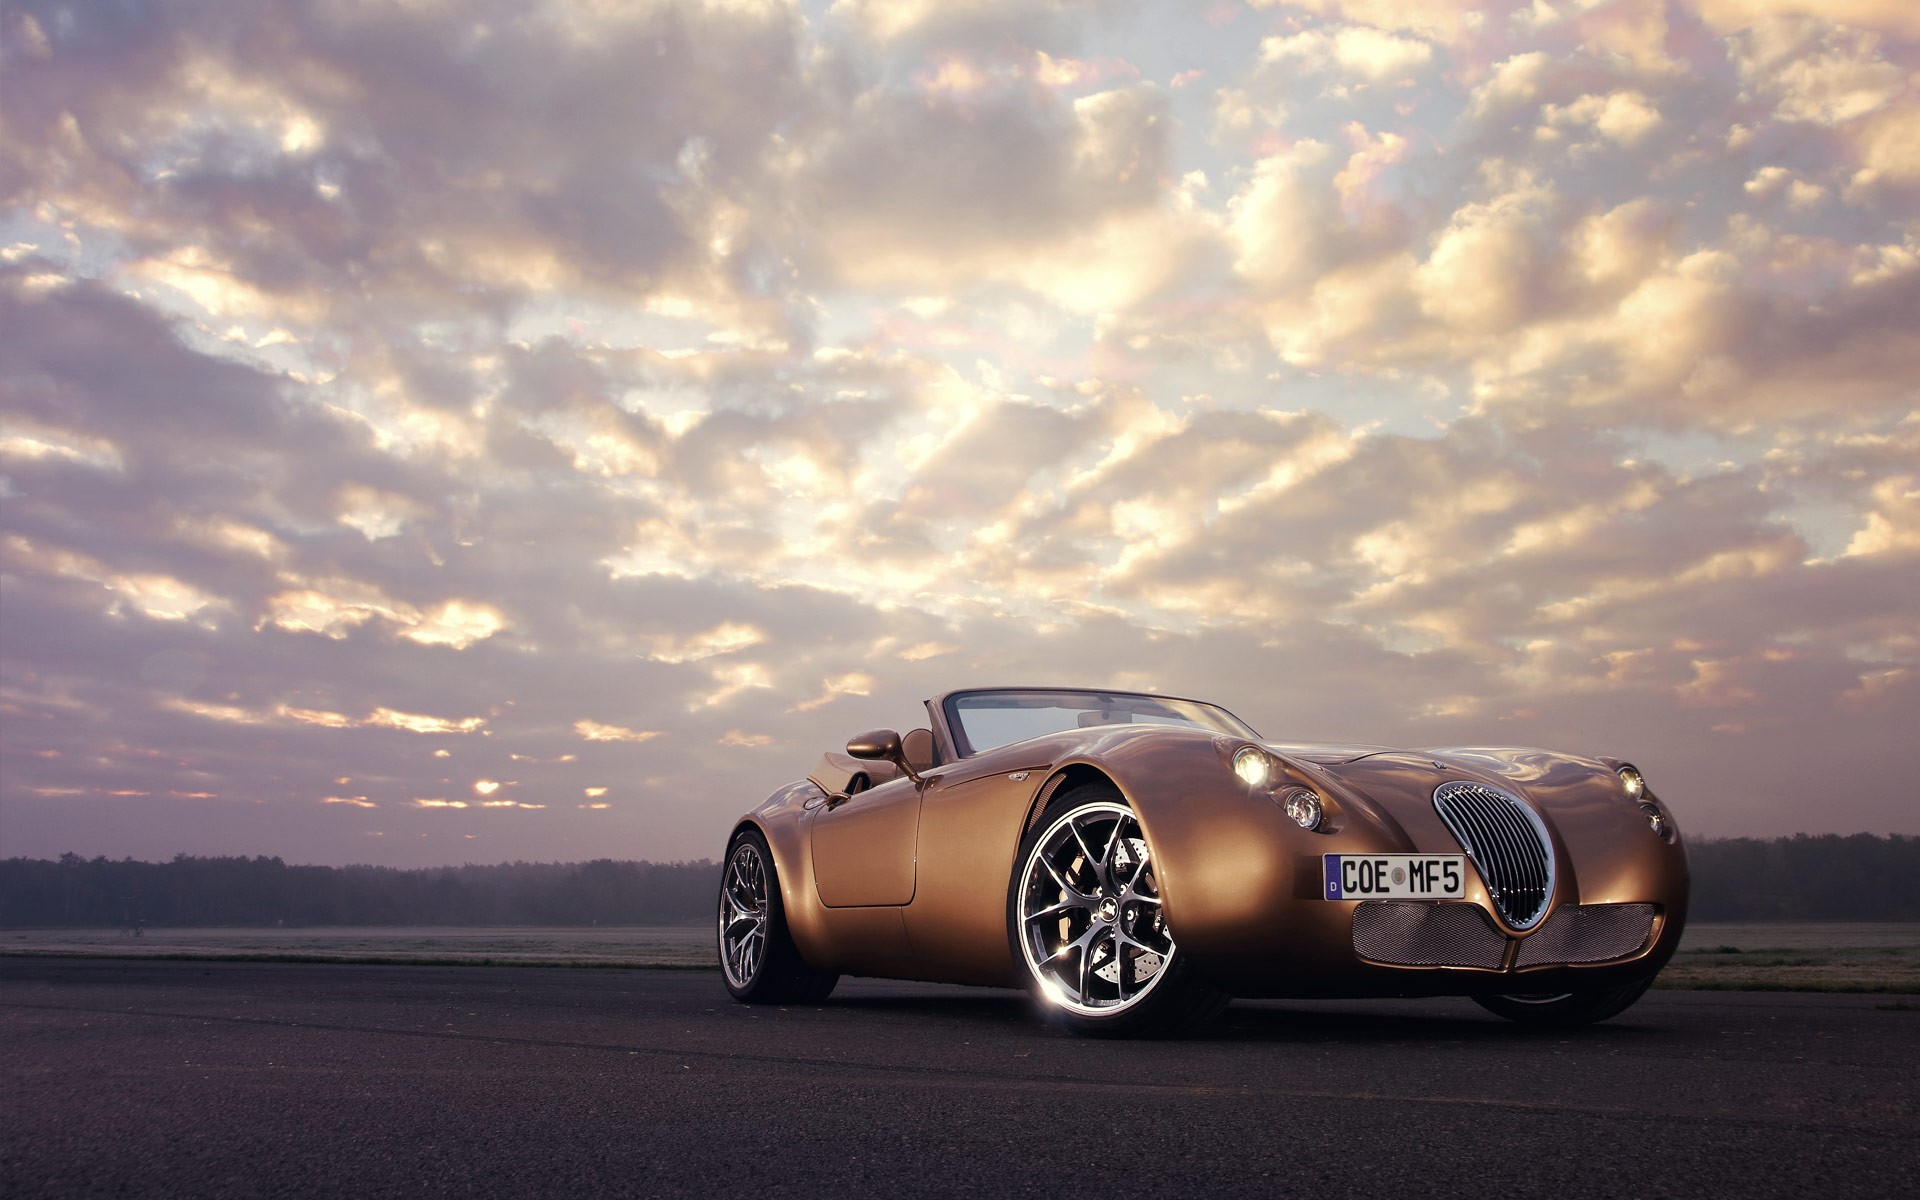 1280x800 Golden Vintage Car 720p Hd 4k Wallpapers Images